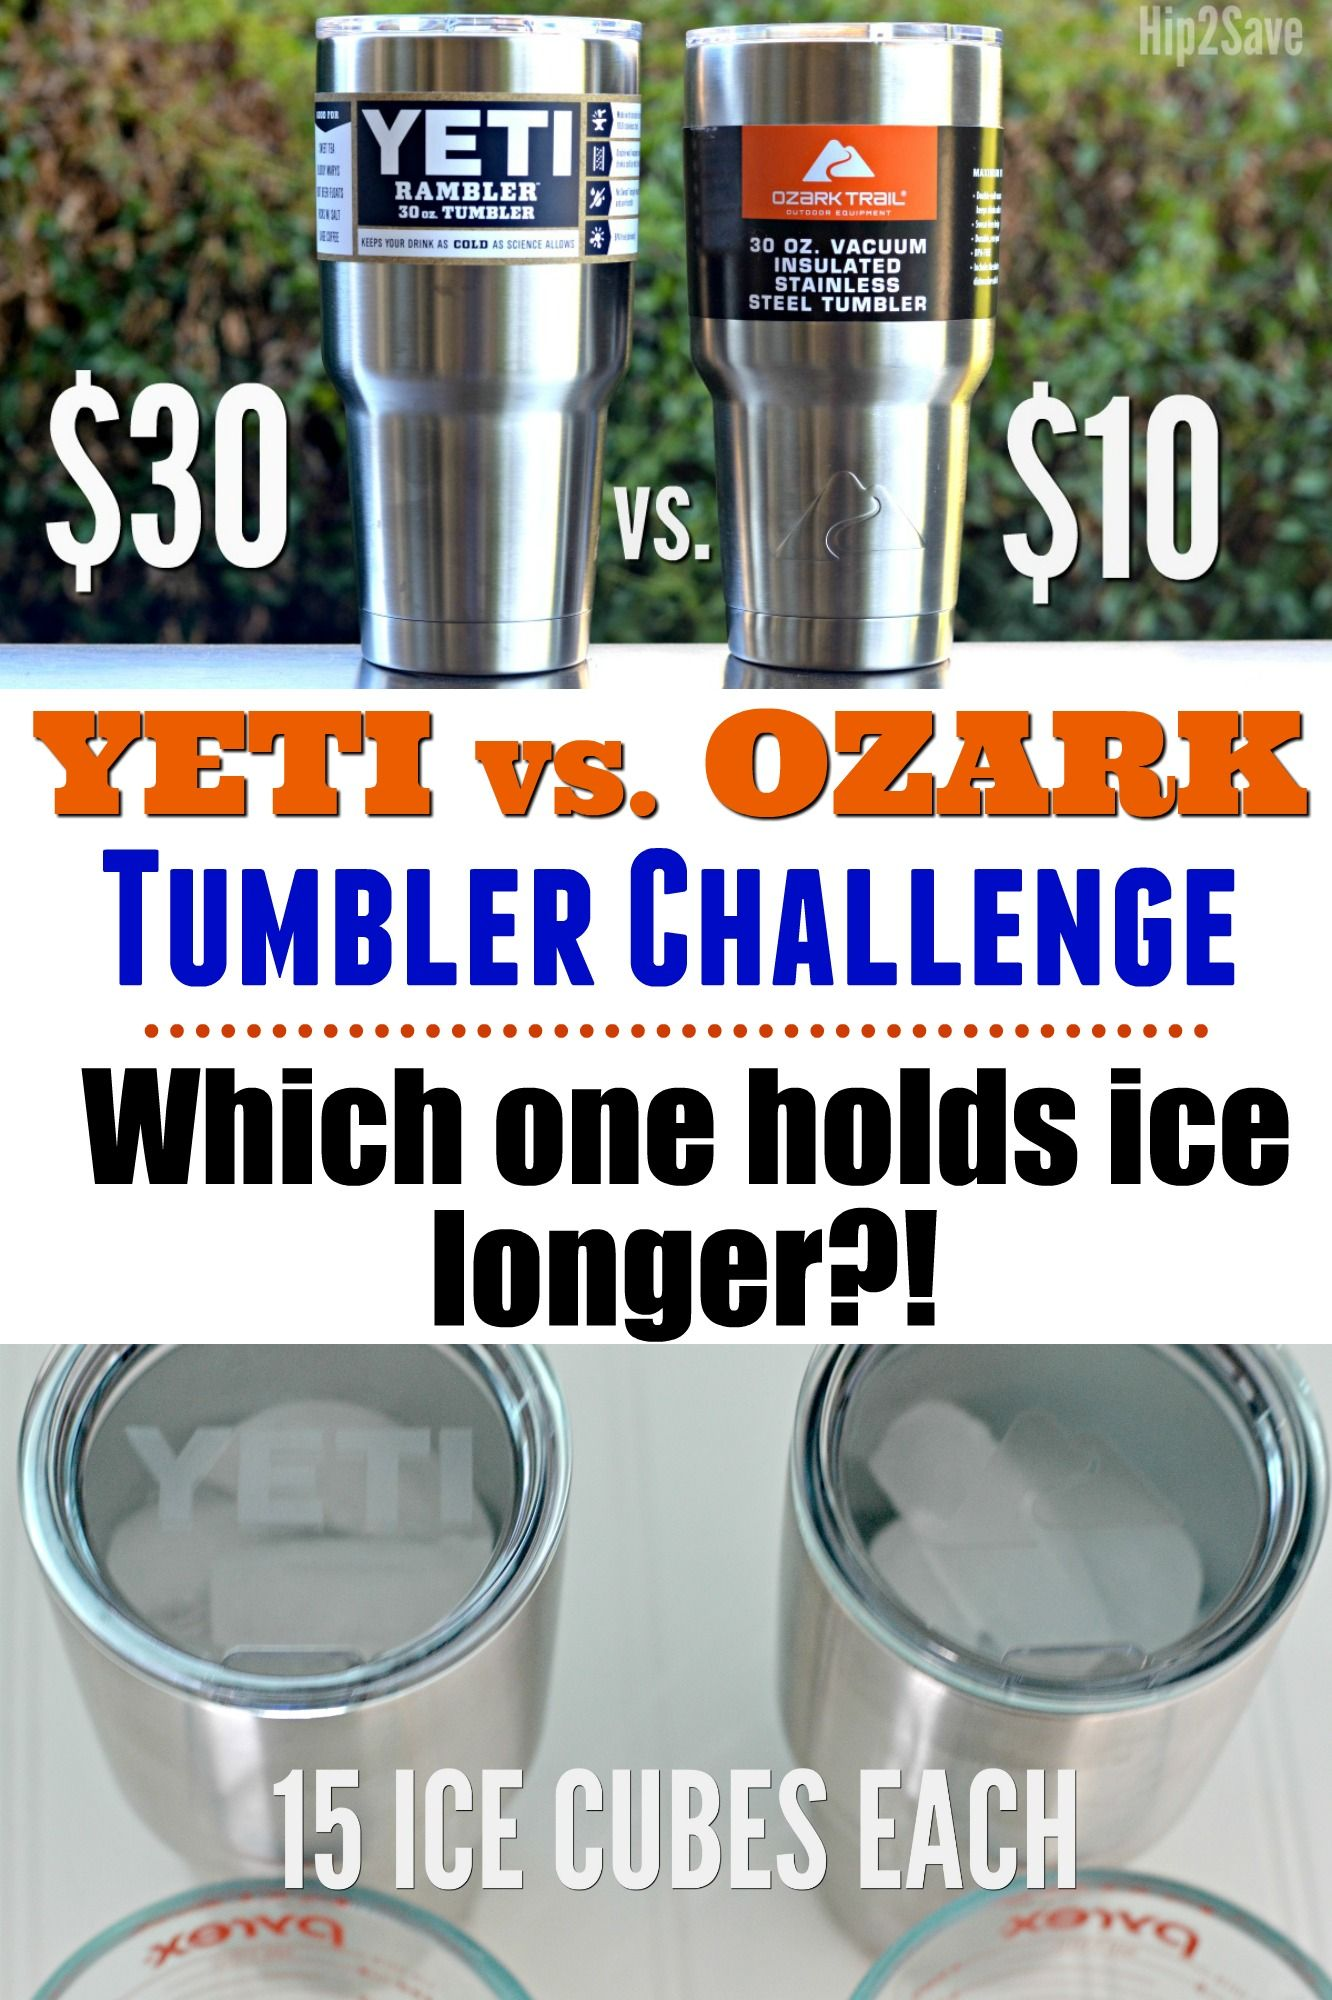 35387b4cf58 Yeti Vs. Ozark Tumbler Challenge | Best Of Hip2Save Tips, Recipes ...